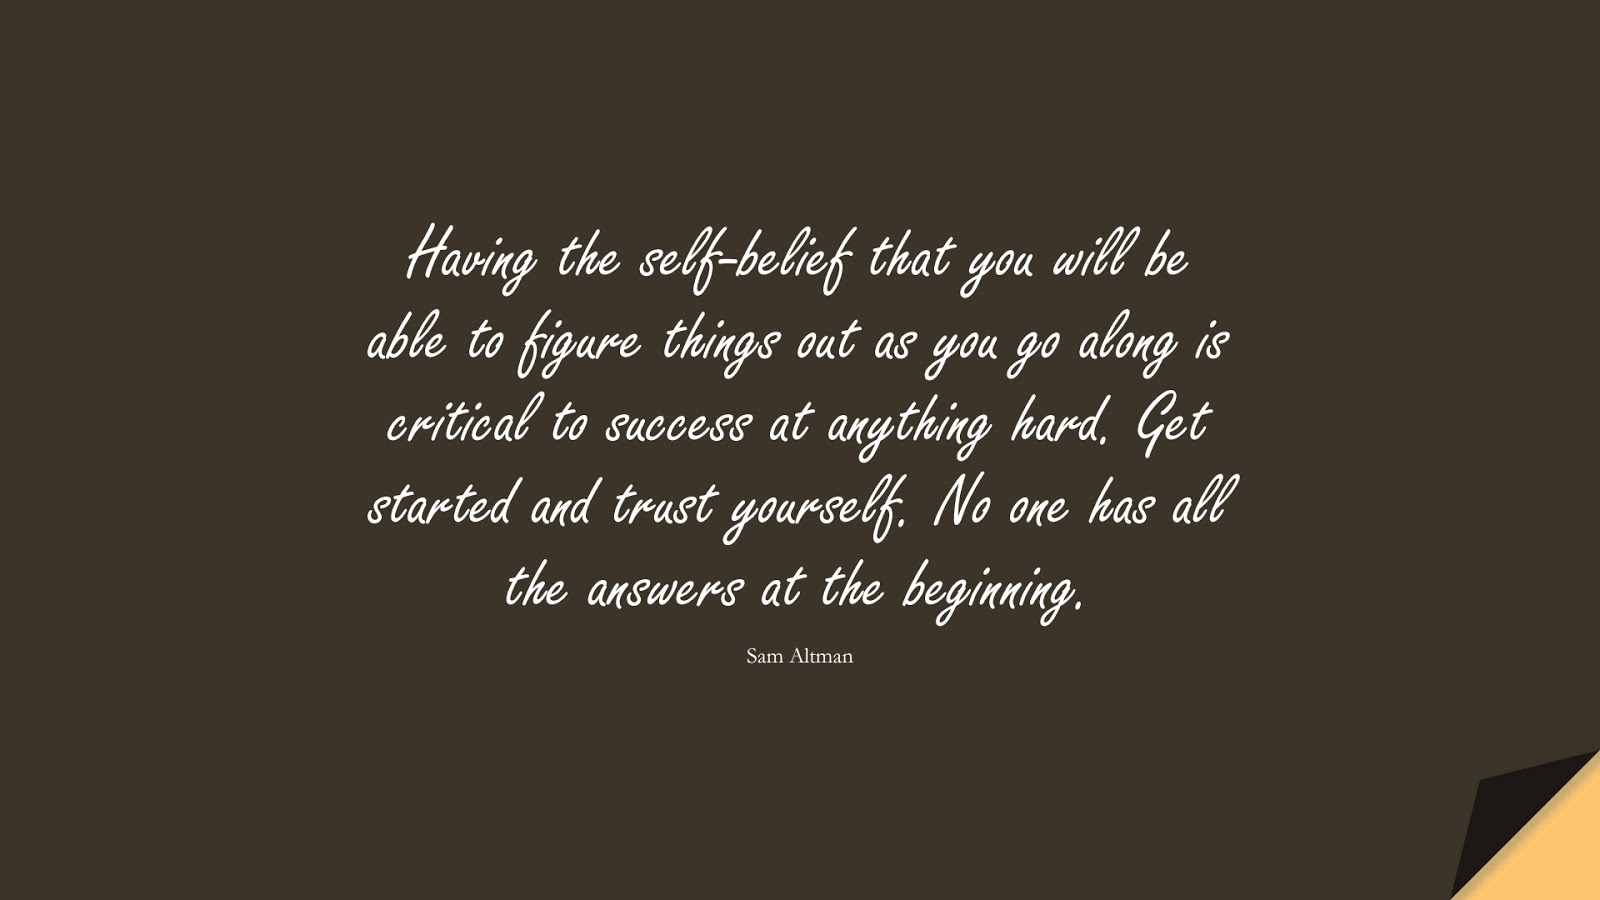 Having the self-belief that you will be able to figure things out as you go along is critical to success at anything hard. Get started and trust yourself. No one has all the answers at the beginning. (Sam Altman);  #EncouragingQuotes